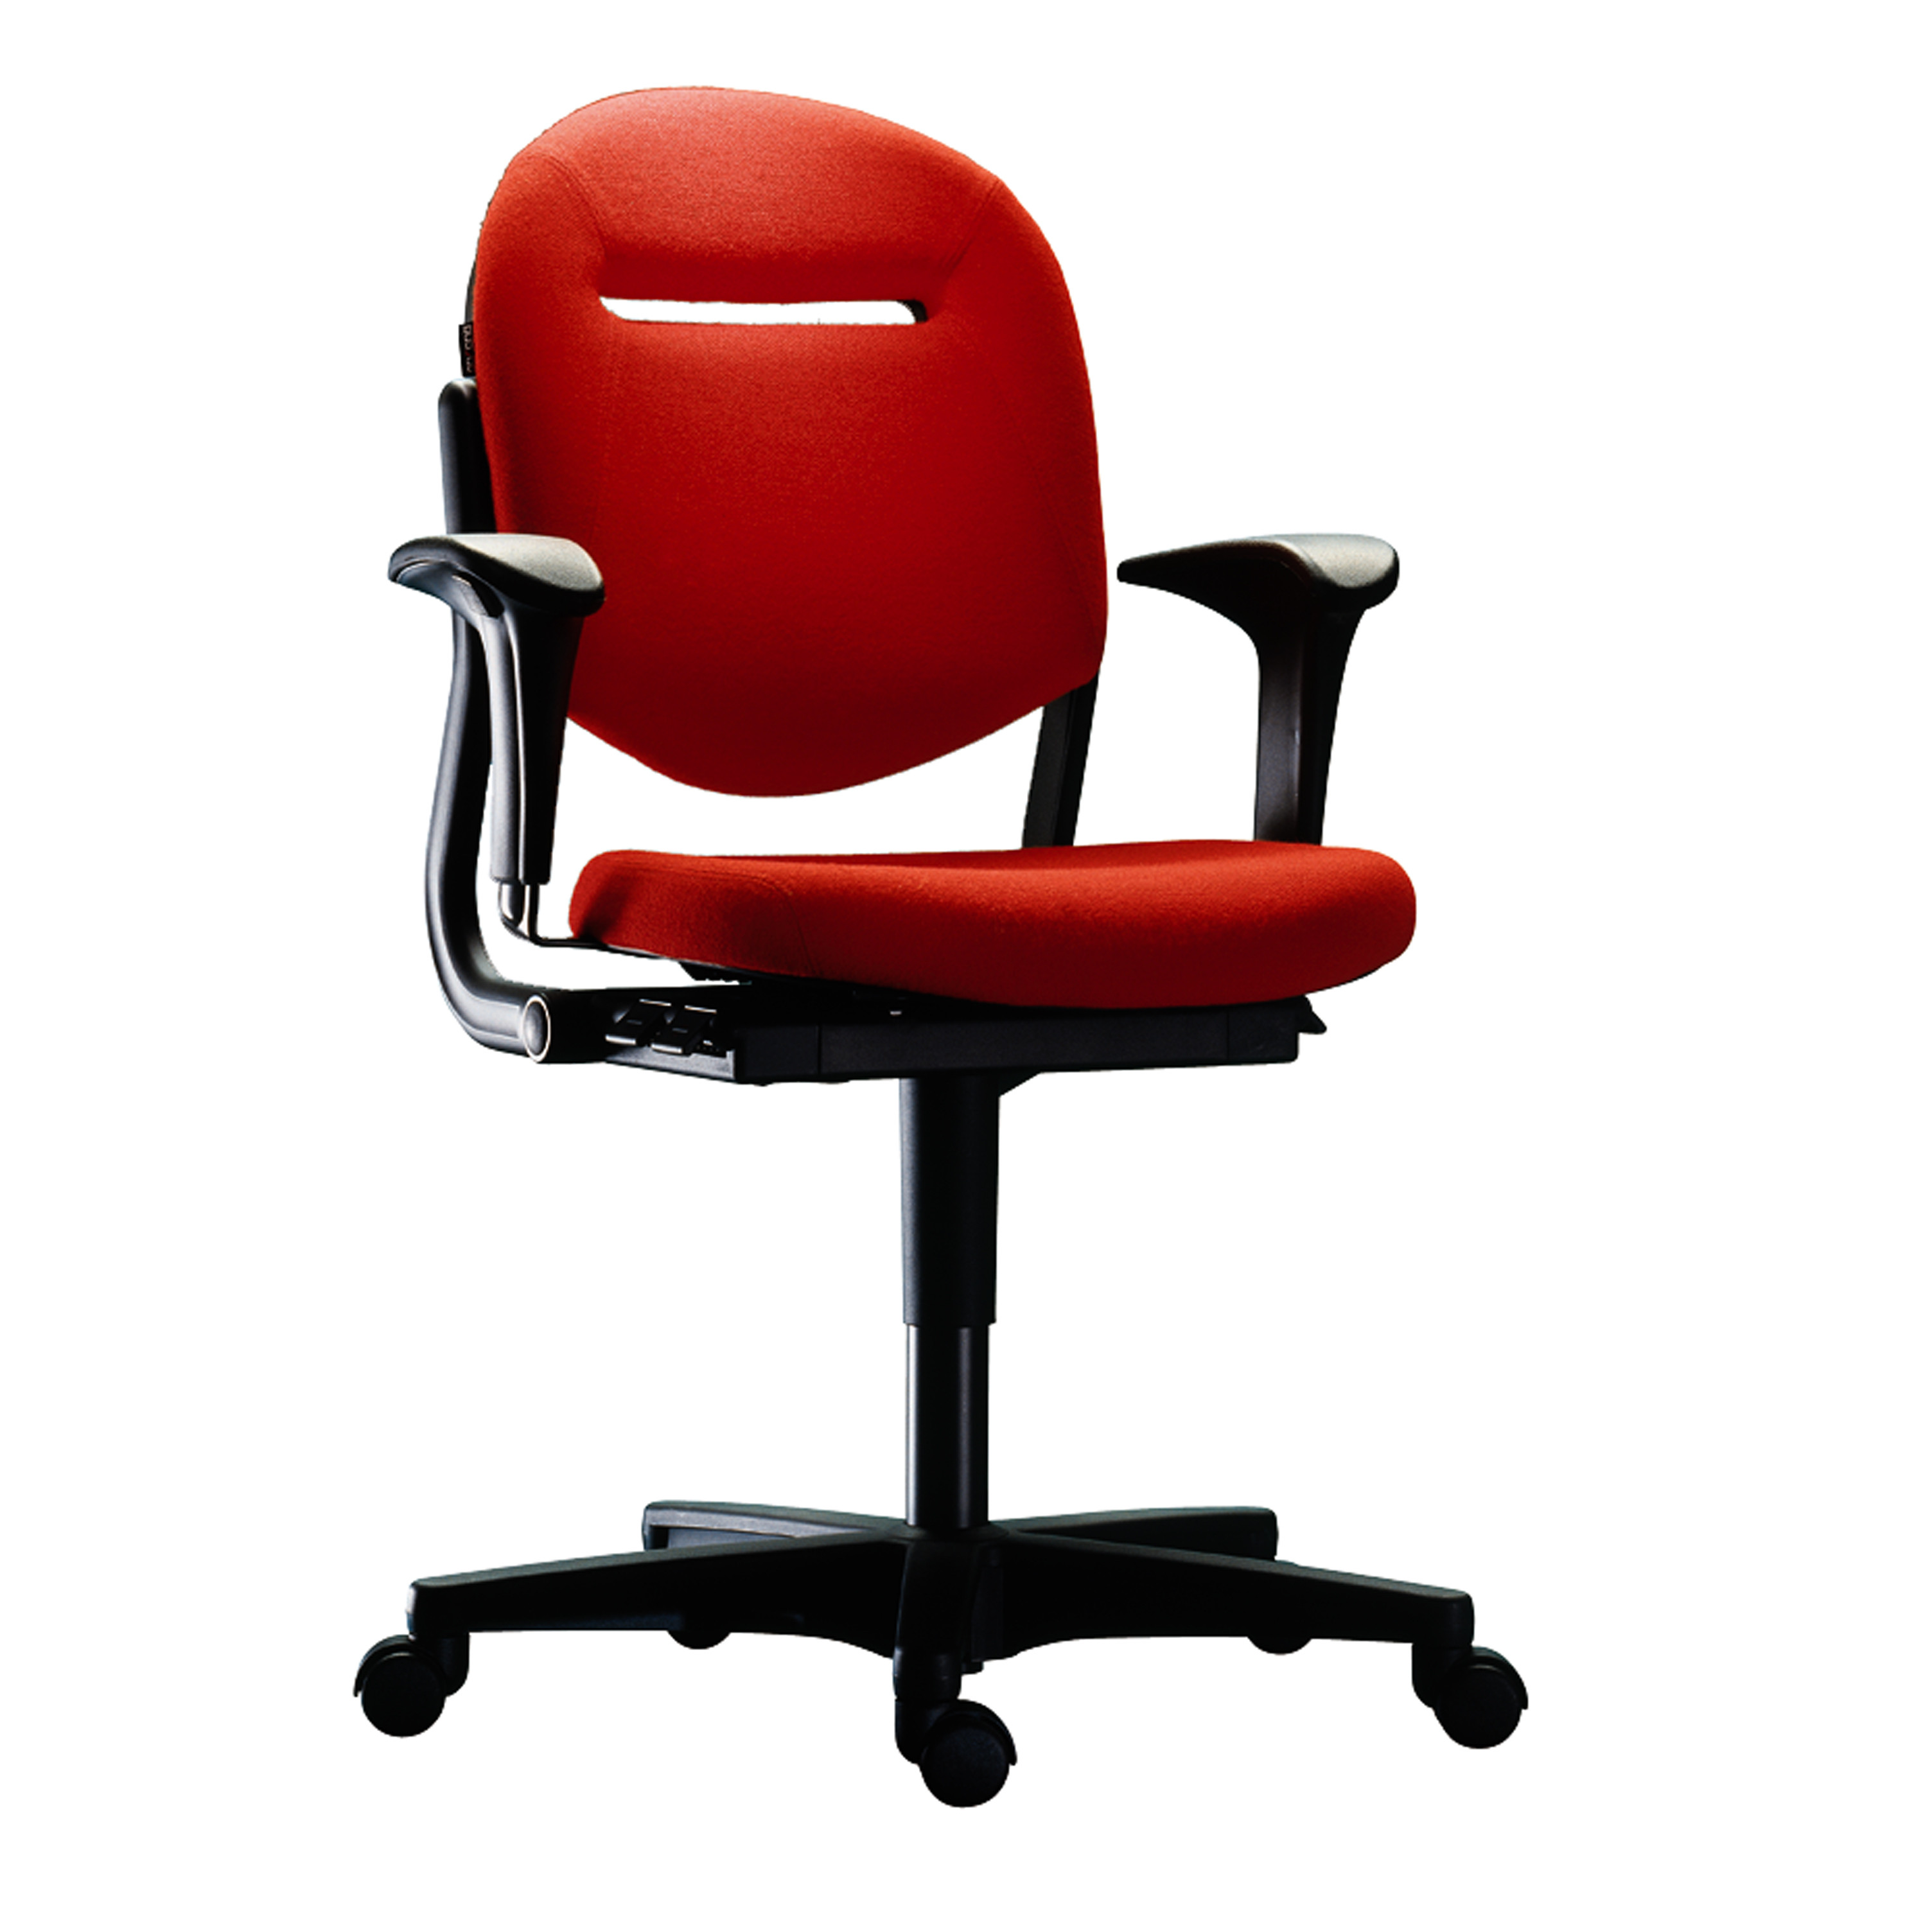 Ahrend 220 Office Swivel Chair